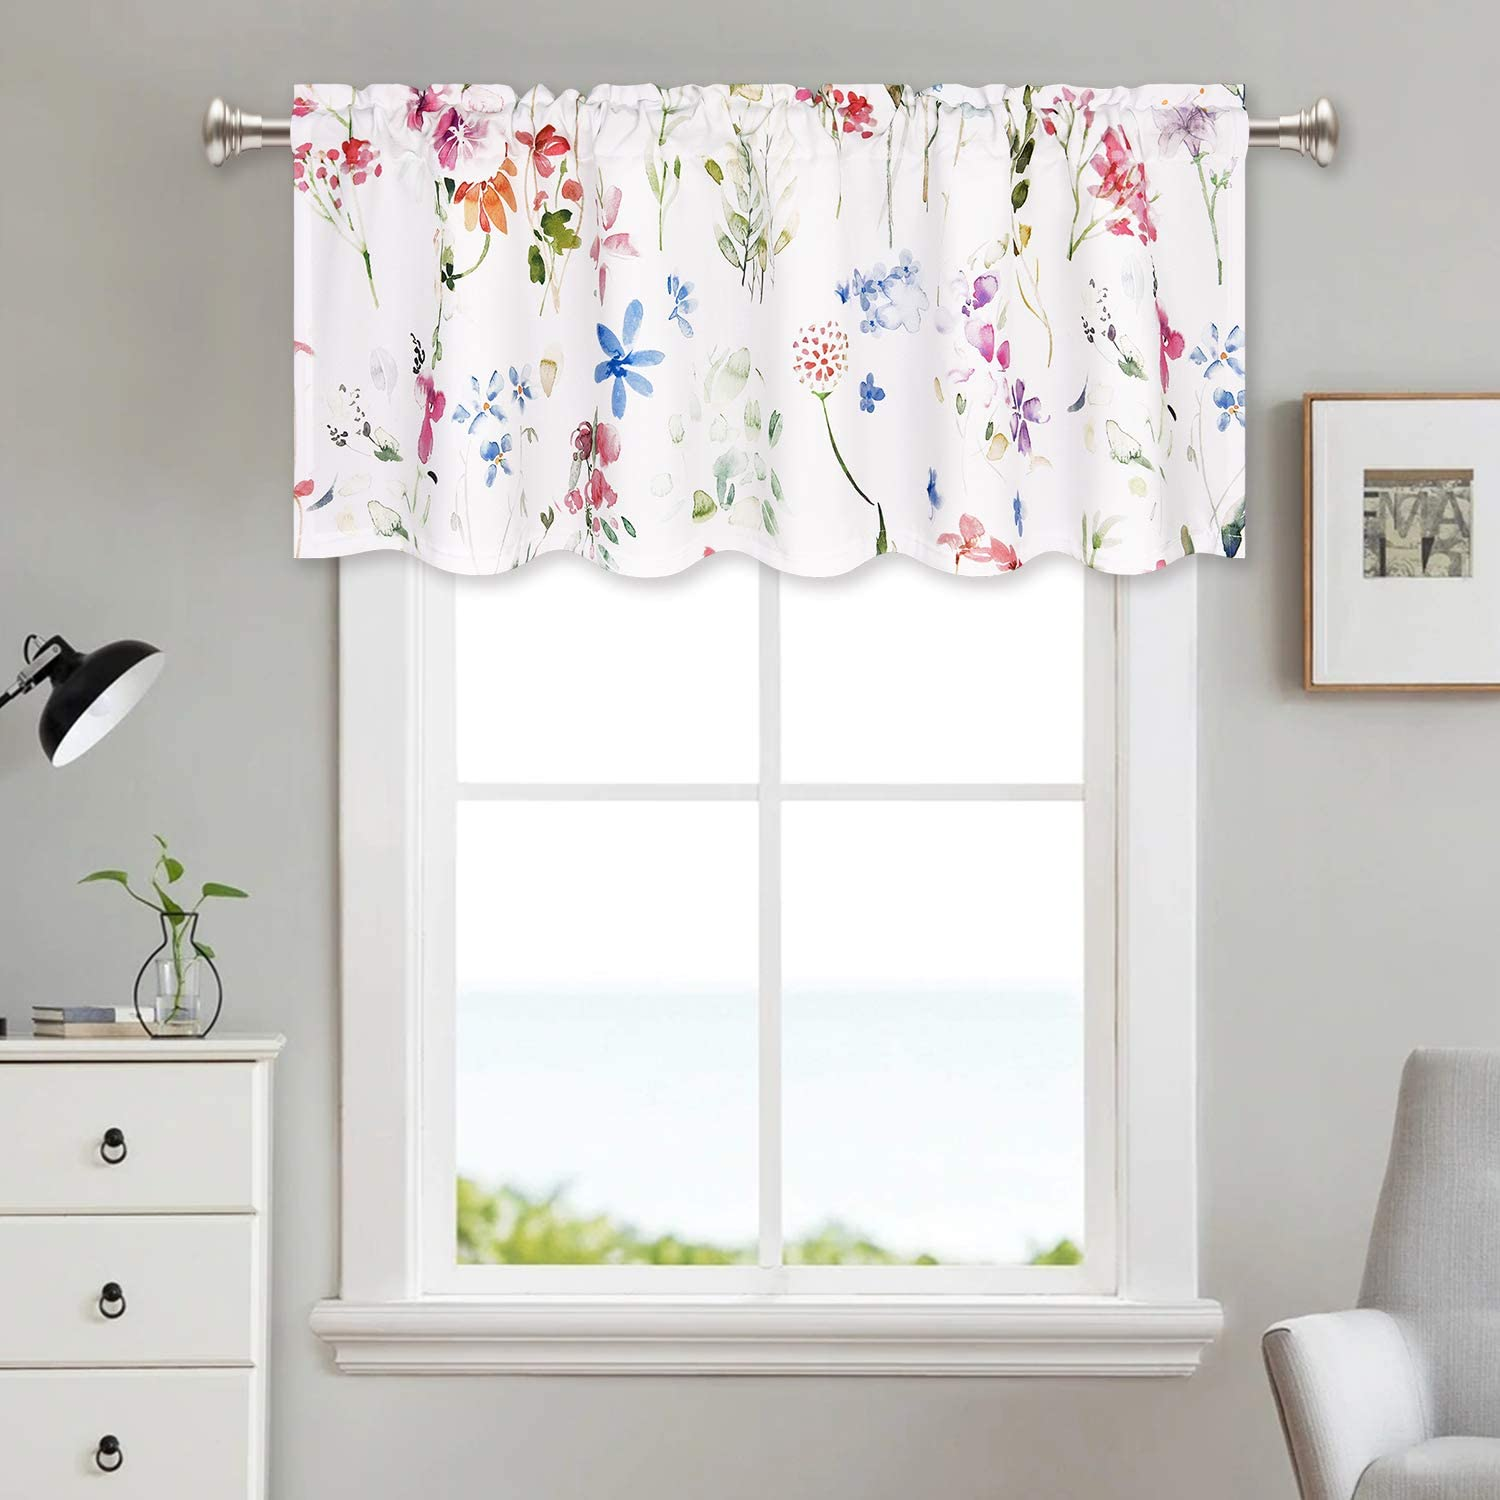 Floral Valance Window Curtains Watercolor Flower Kitchen Curtains 52 X 18 Inches Rod Pocket Curtains Home Decoration Kitchen Dining